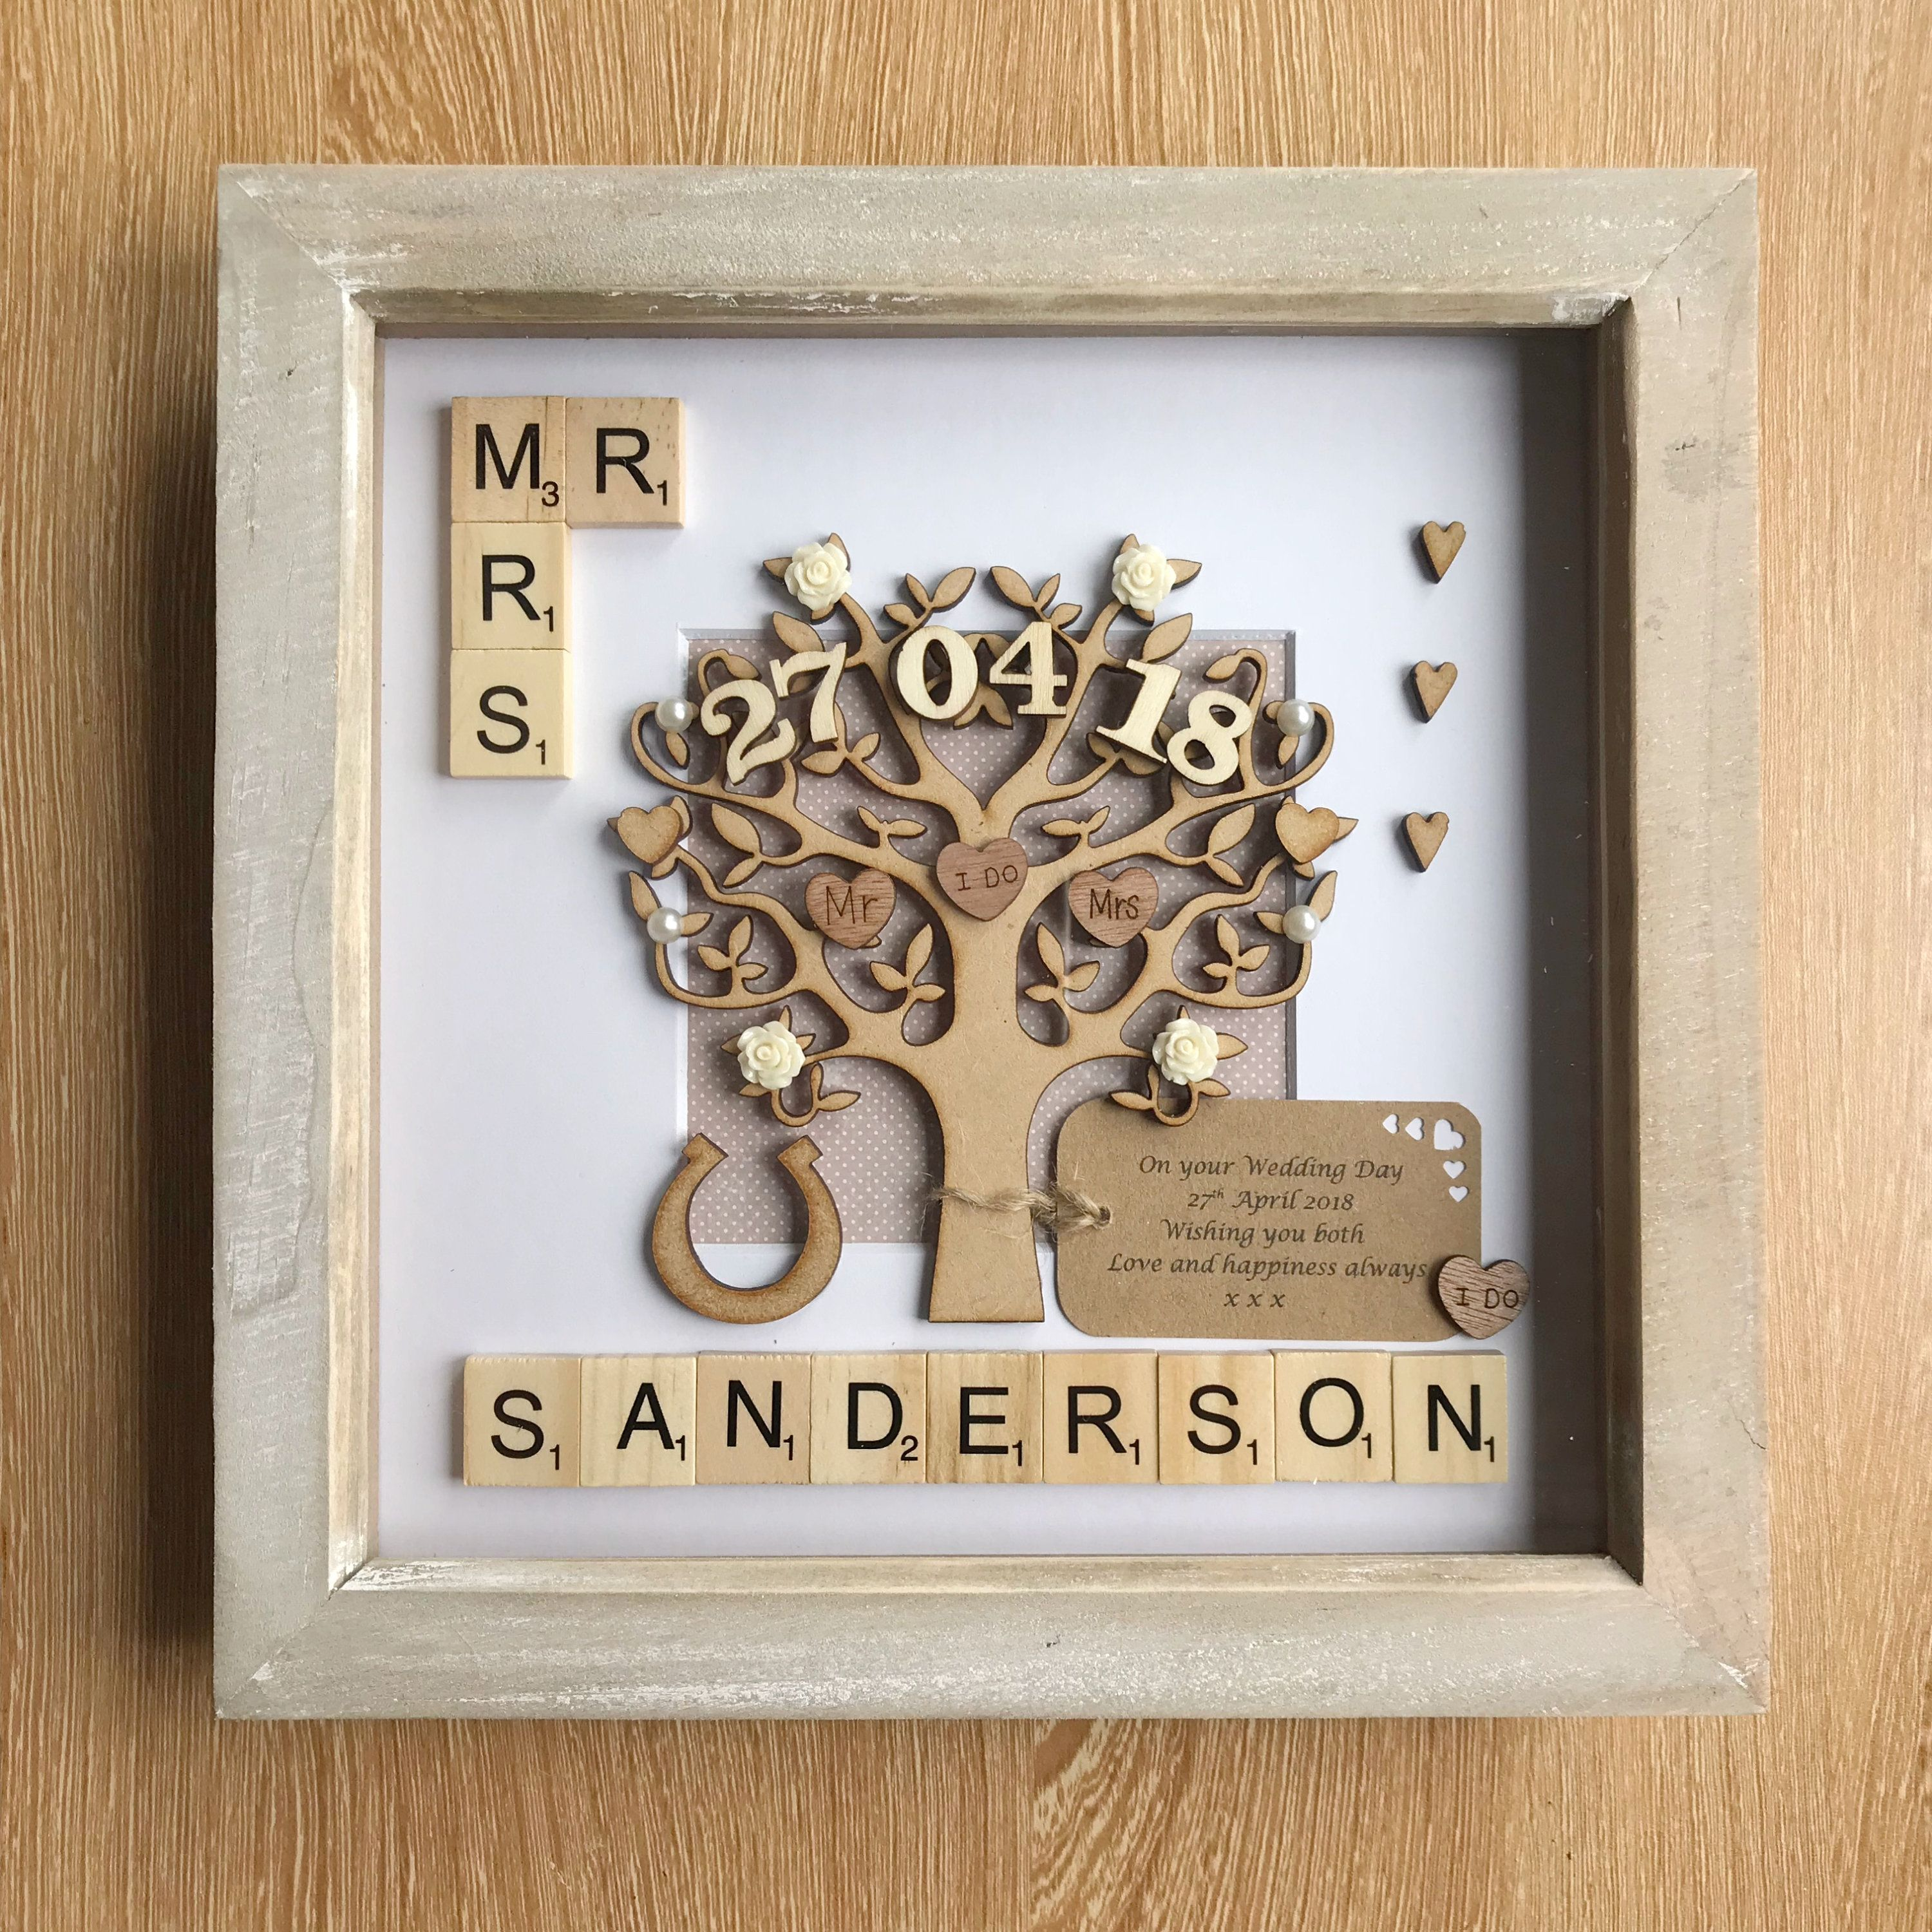 Wedding Gift Unique Wedding Gift For Couples Rustic Theme Frame Mr Mrs Wedding Anniversary Gift Handm Wind Chime Gift Unique Wedding Gifts Scrabble Frame